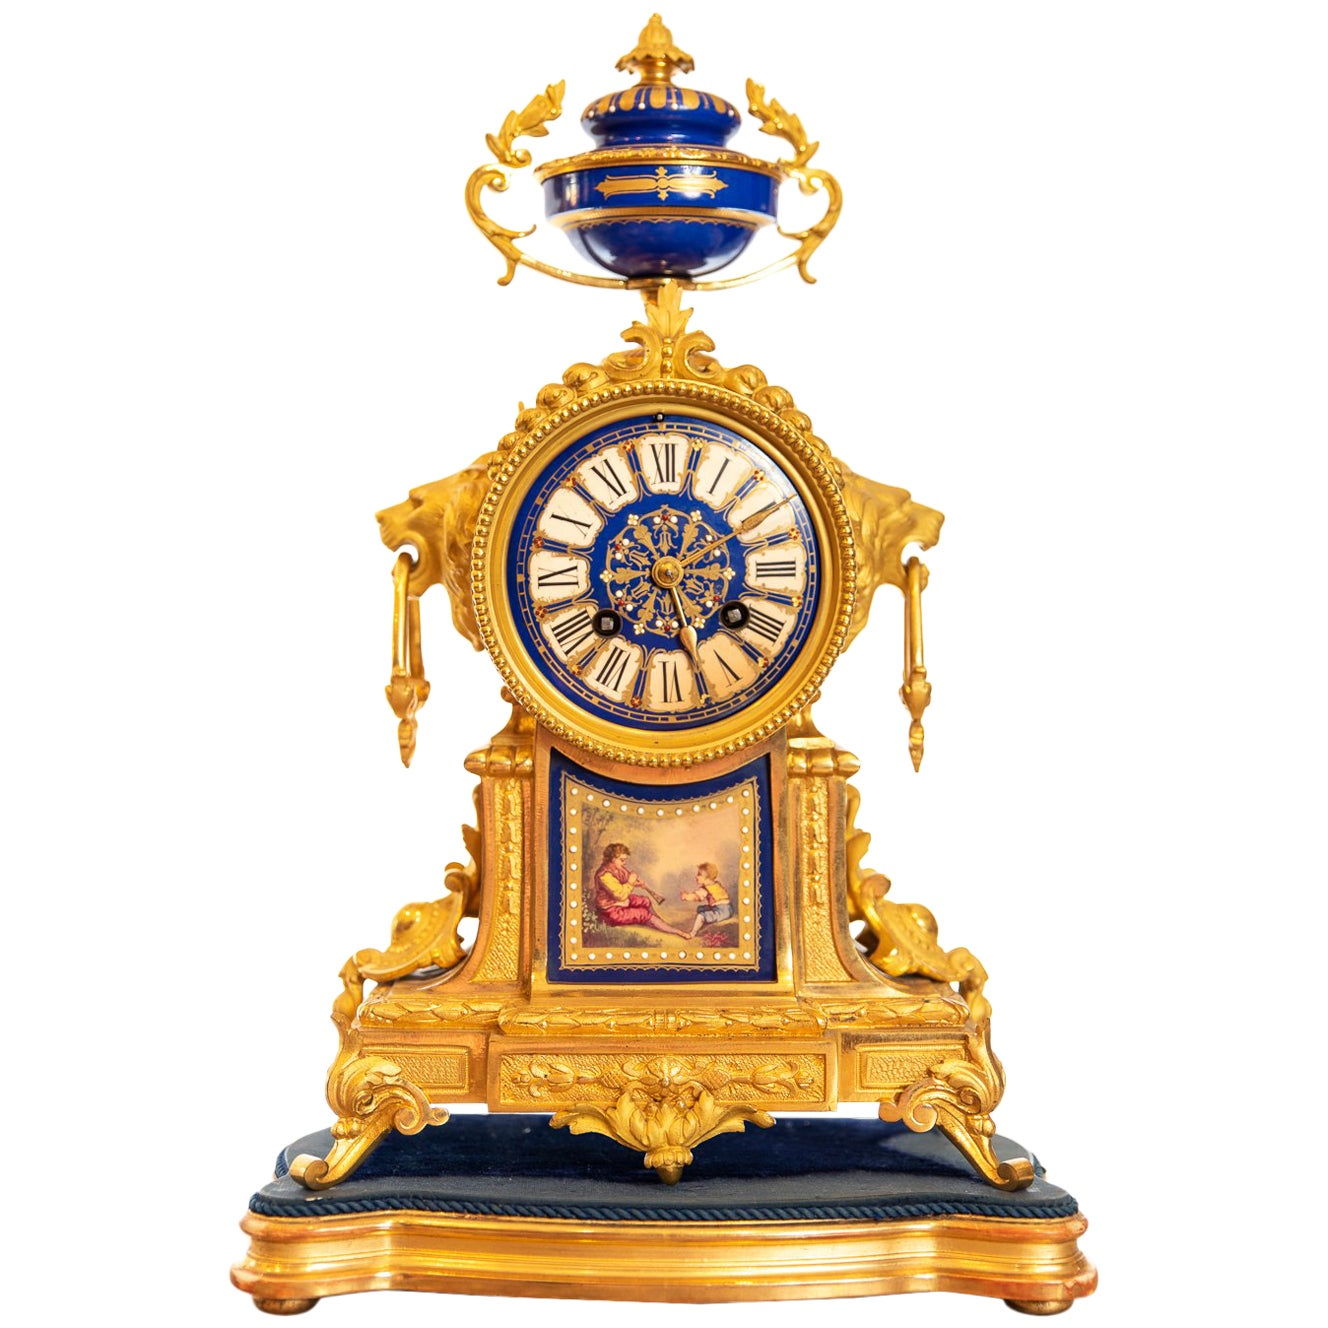 19th Century French Ormolu Clock